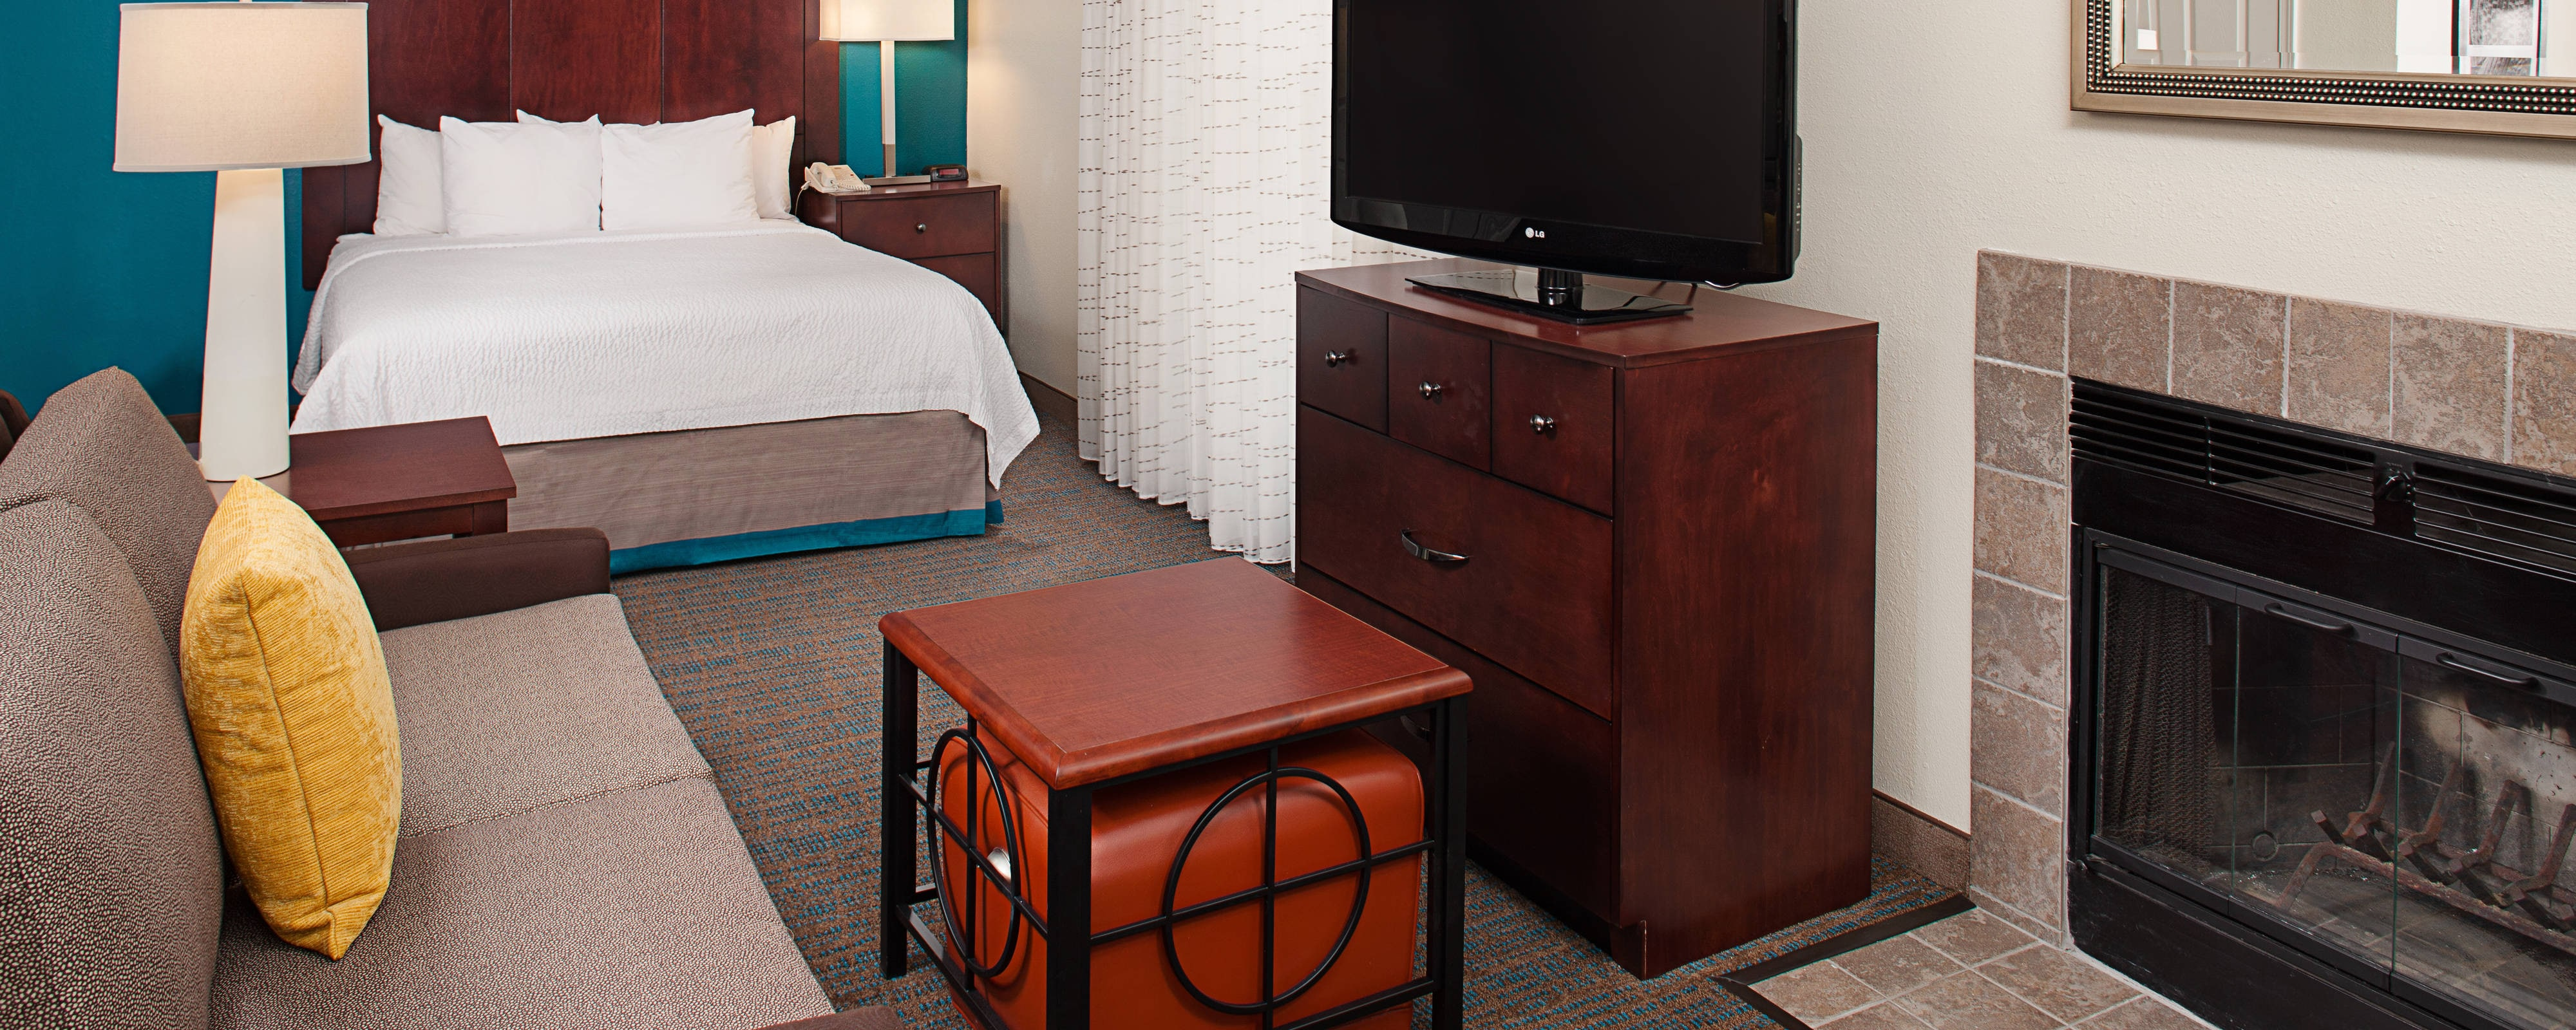 Bellevue Residence Inn Studio Suite